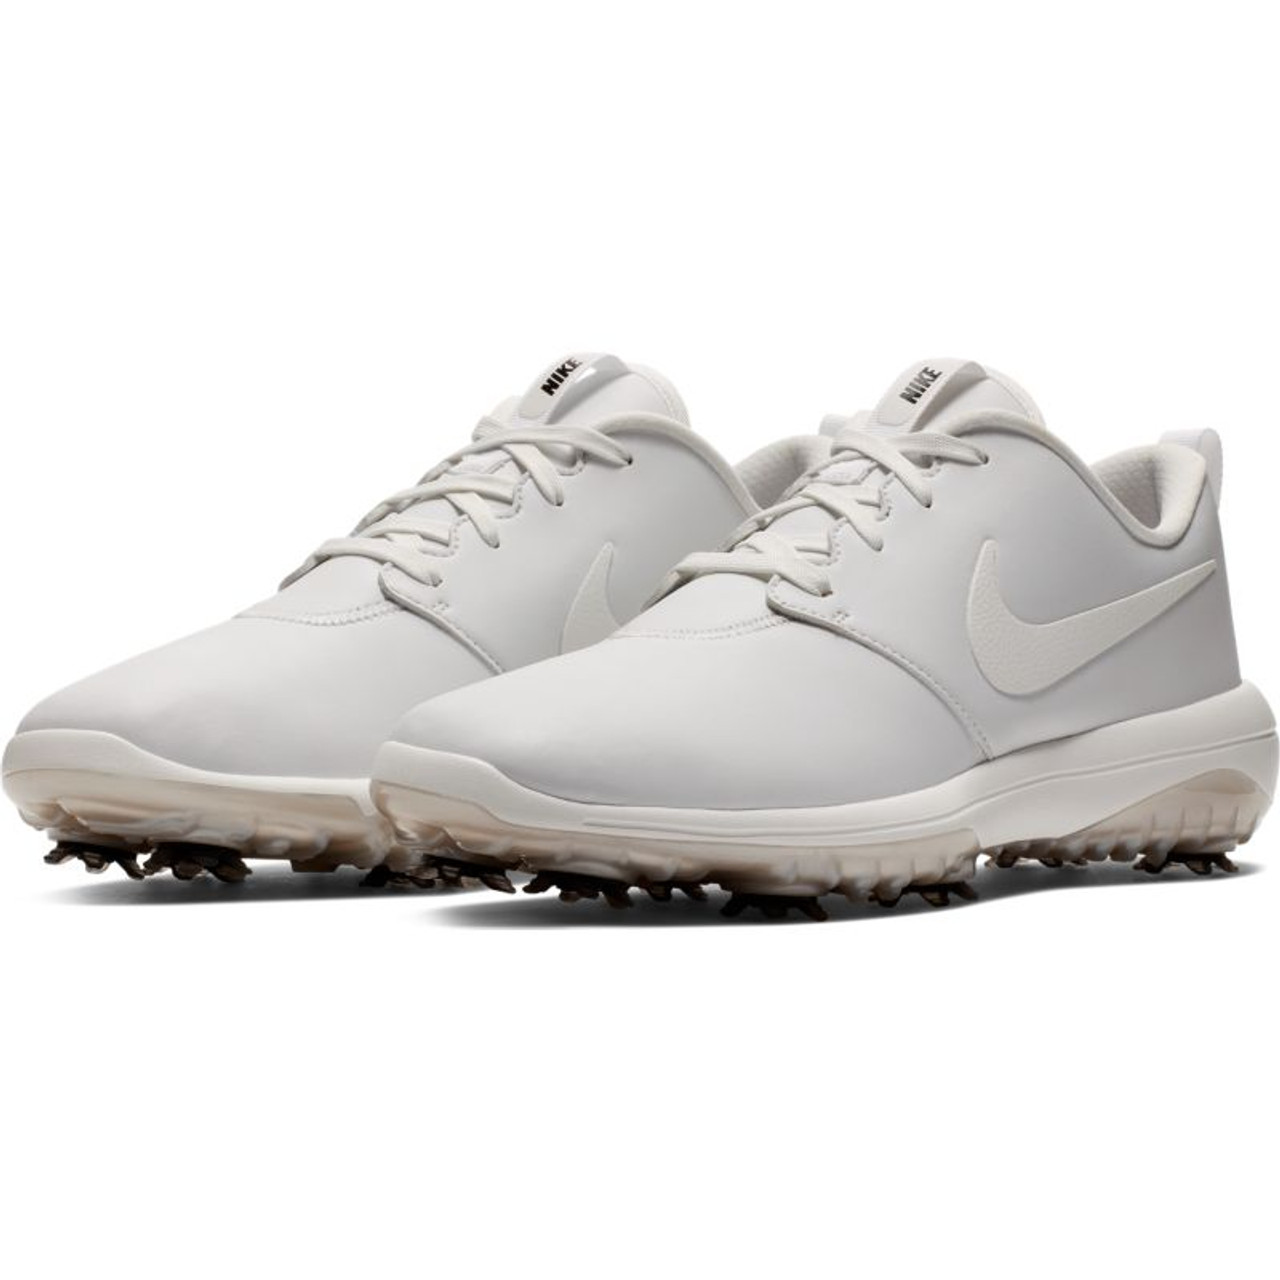 8c55a85a04cd5 Nike Roshe G Tour Golf Shoes